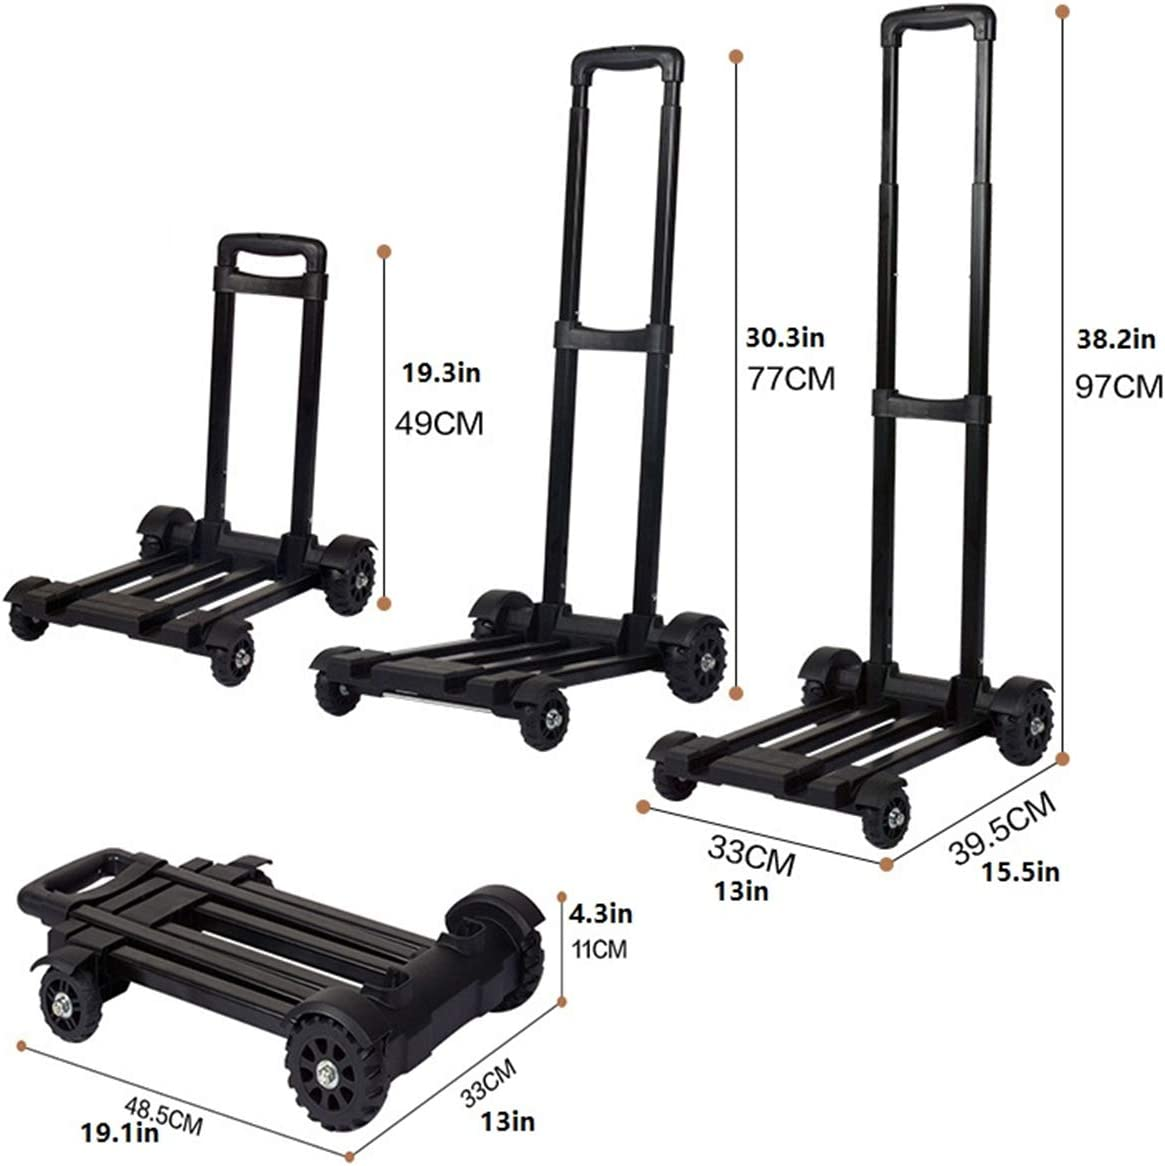 Travel and Moving Portable Fold Up Dolly Personal CYQAQ Folding Hand Truck,60 Kg//132 lbs 4-Wheel Solid Construction Utility Cart for Luggage